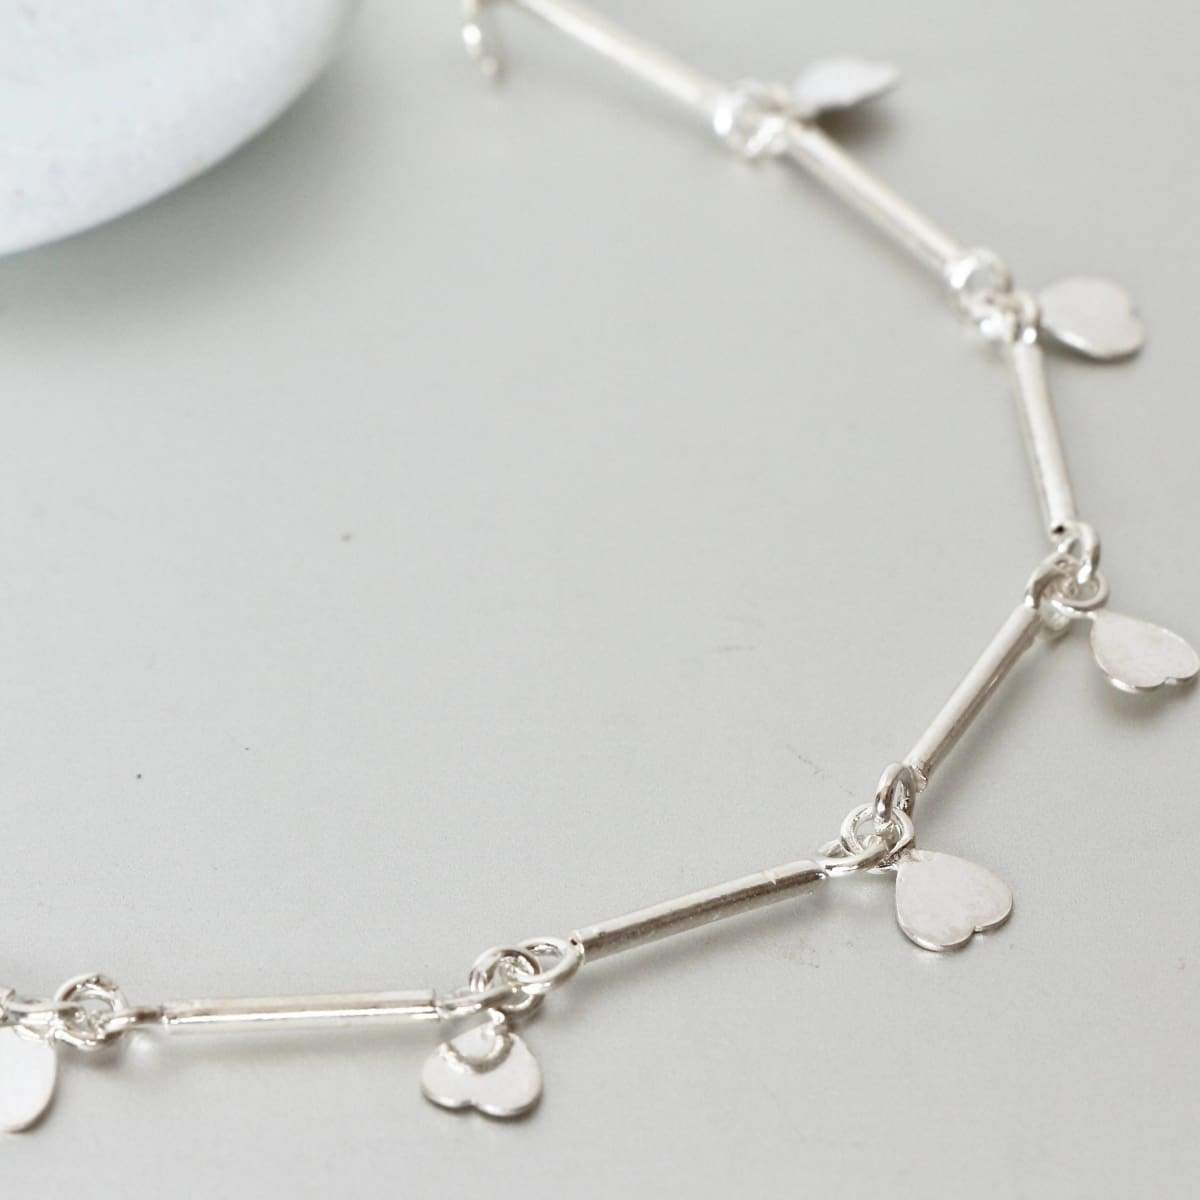 Anklets Hearts Charm Anklet Silver Tube Links Chain Gypsy Style Minimalist Delicate Jewelry Simple Beach Wear,Bohemian (AS80)